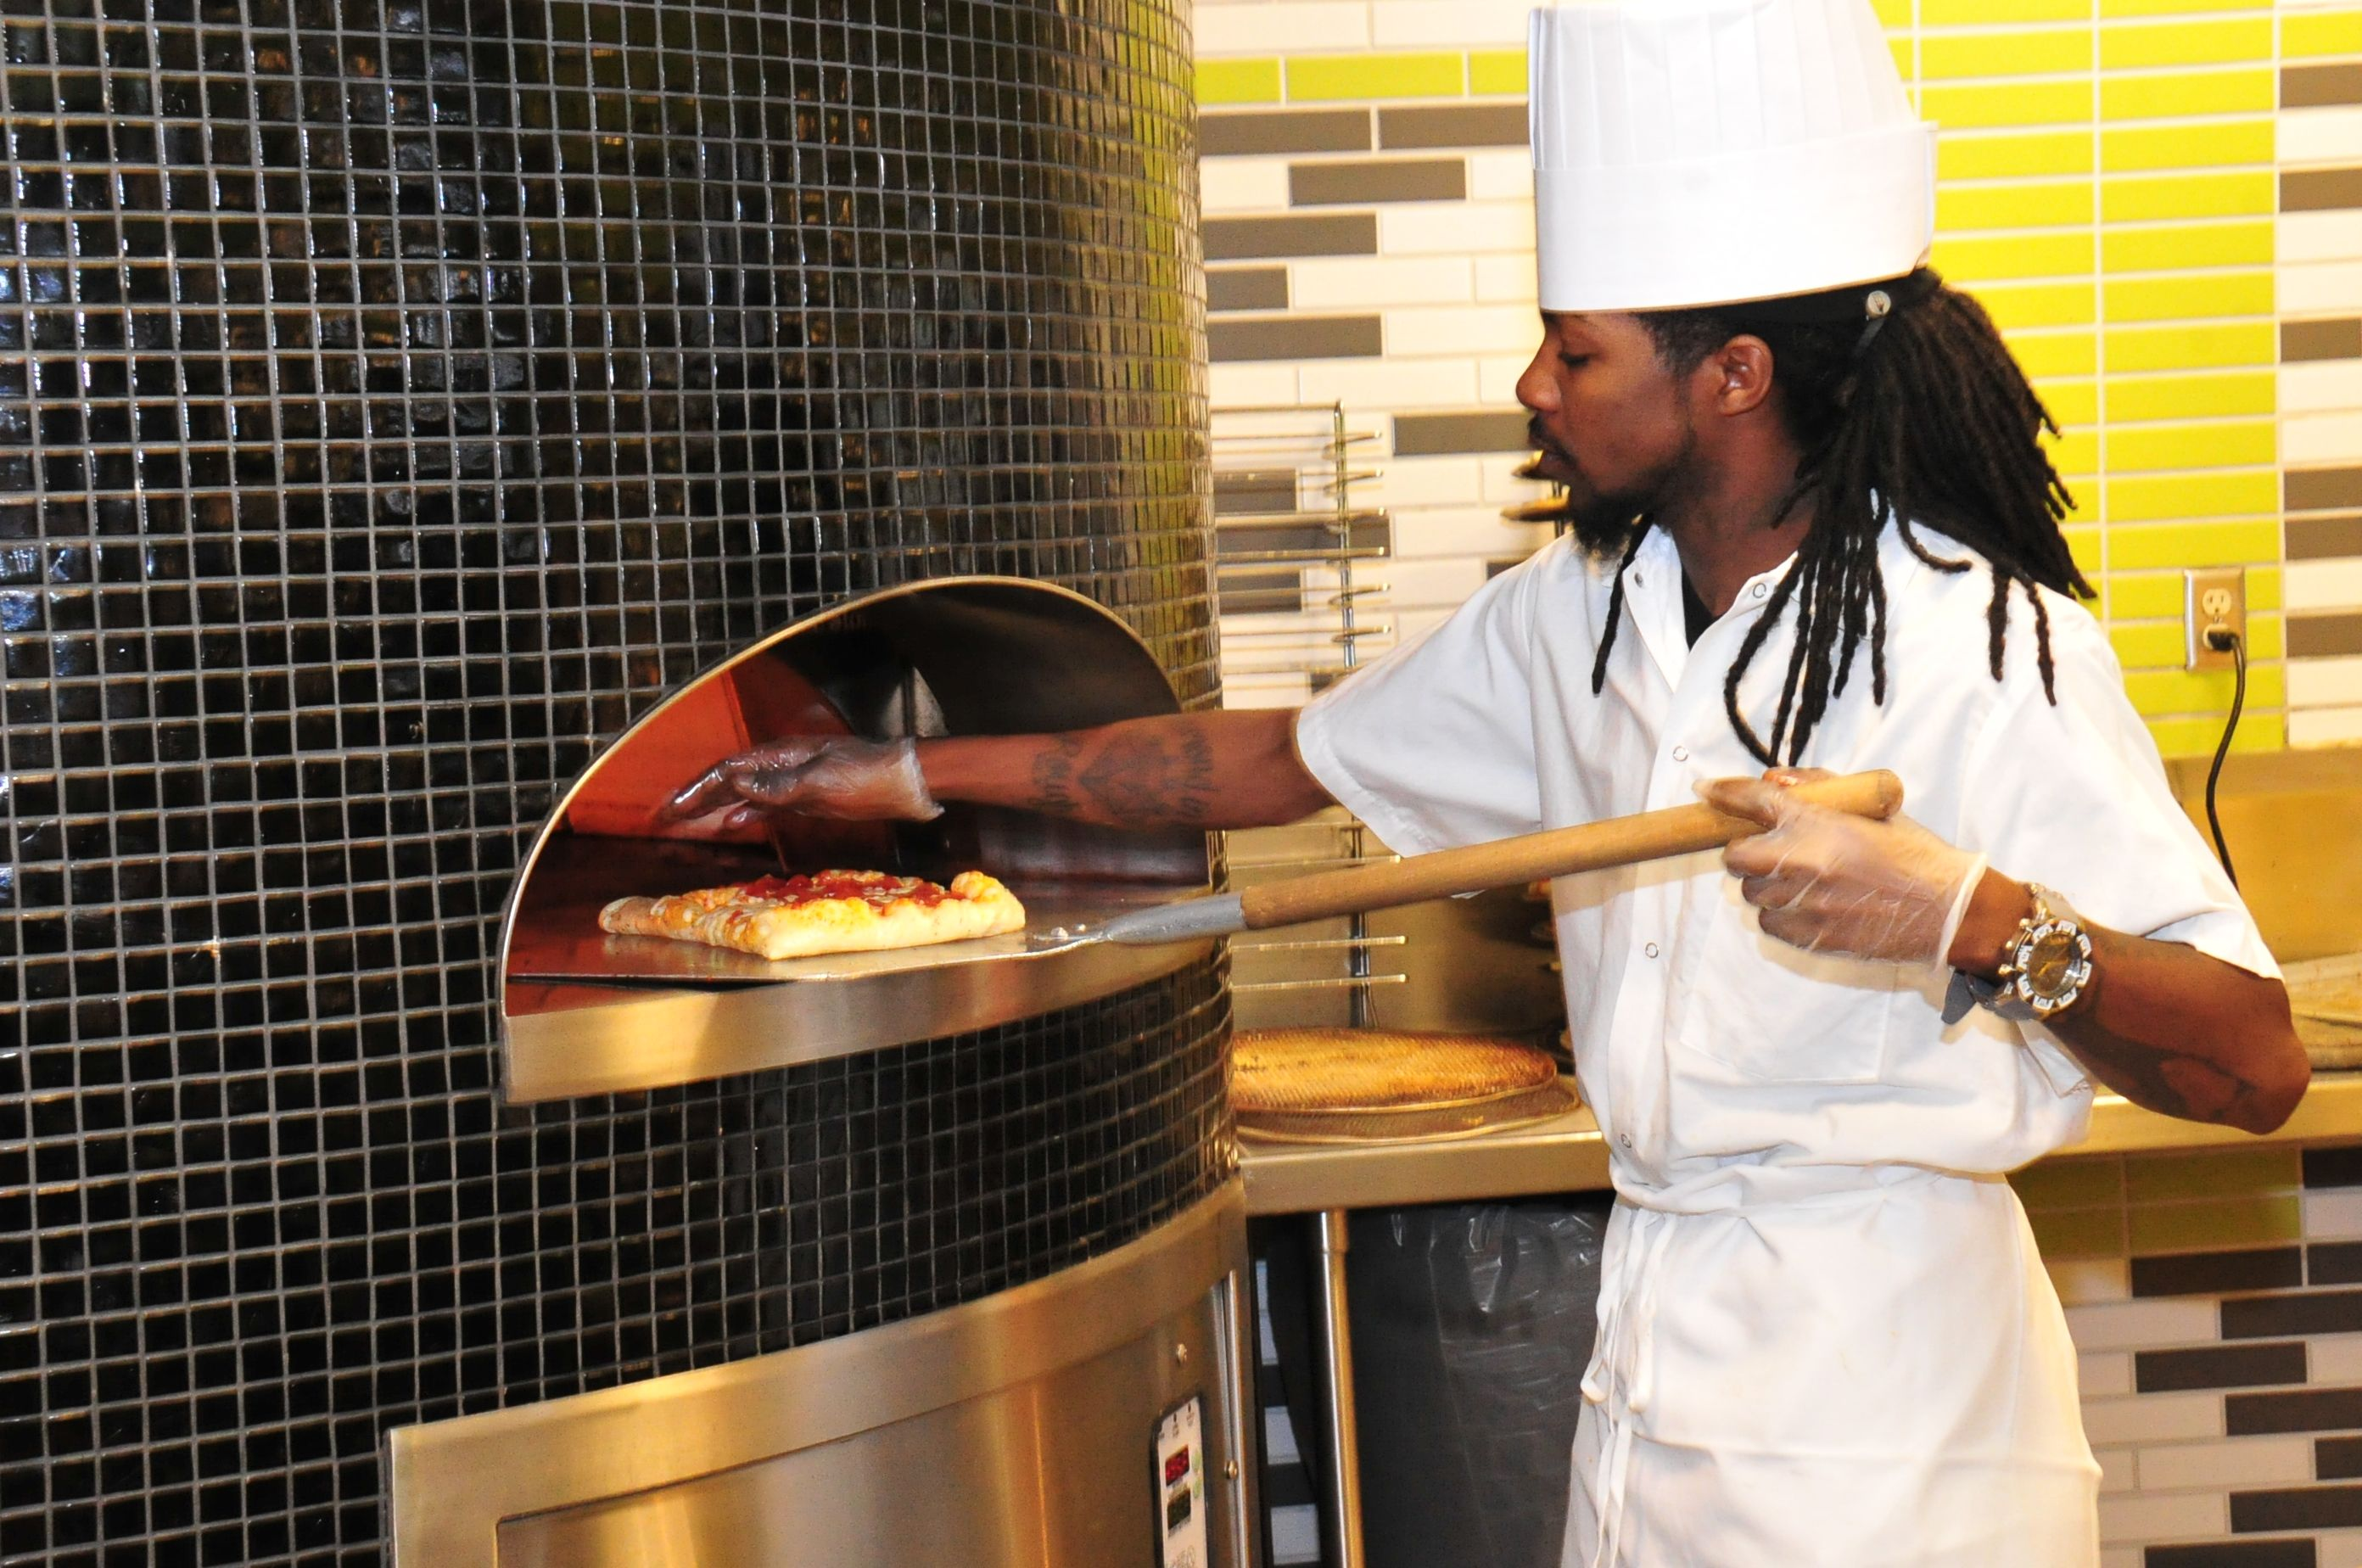 State Quad: Craving pizza? #UAlbany's State Quad features a brick oven for #pizza!